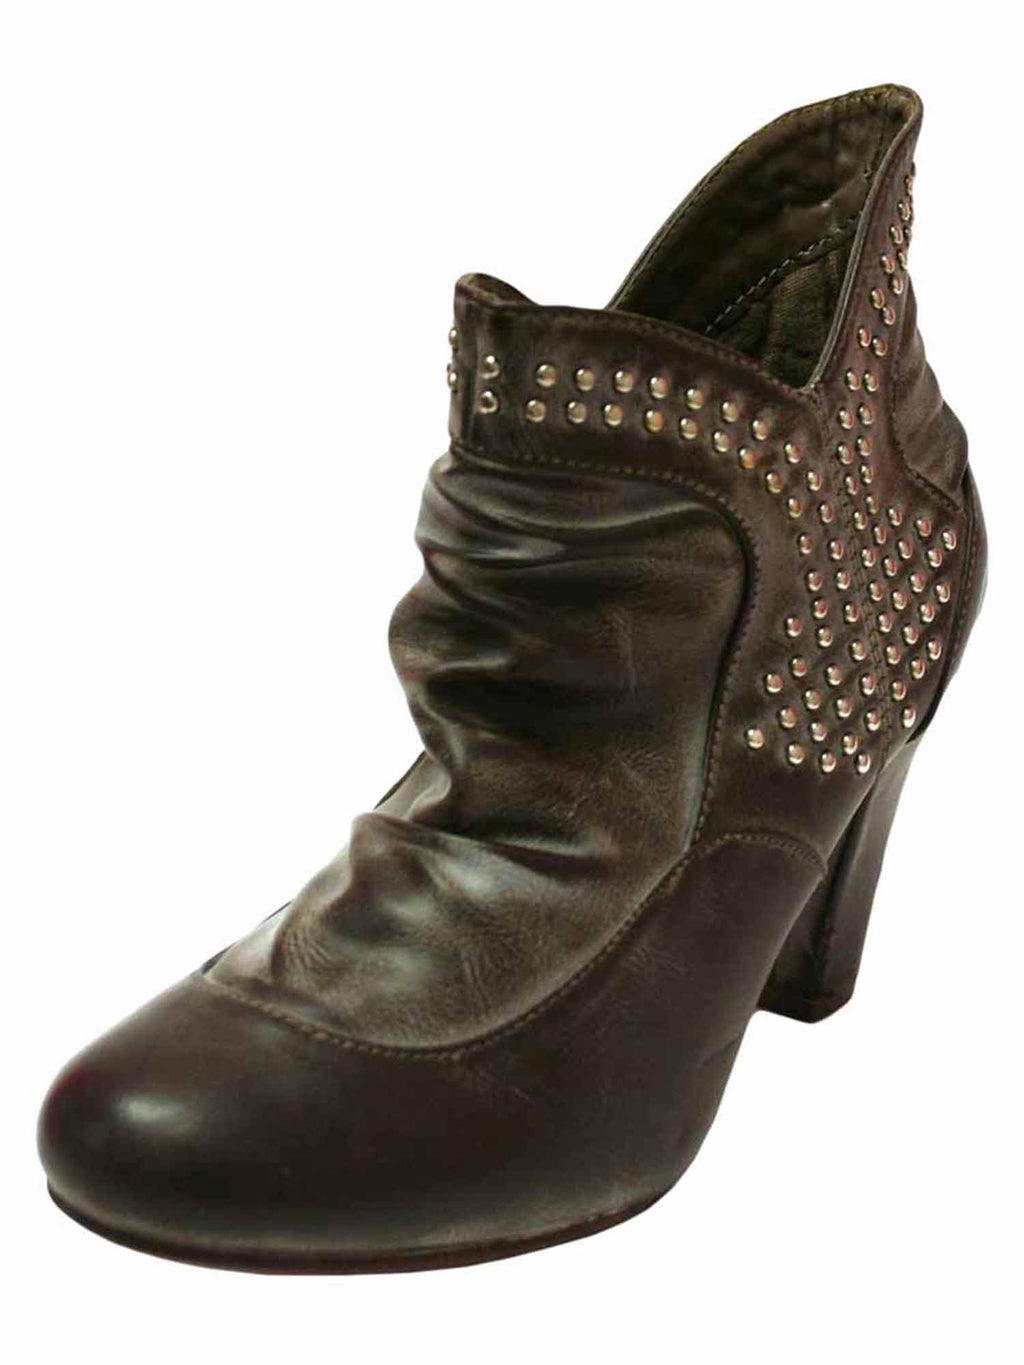 Faded Brown Studded Retro Ankle Booties For Women